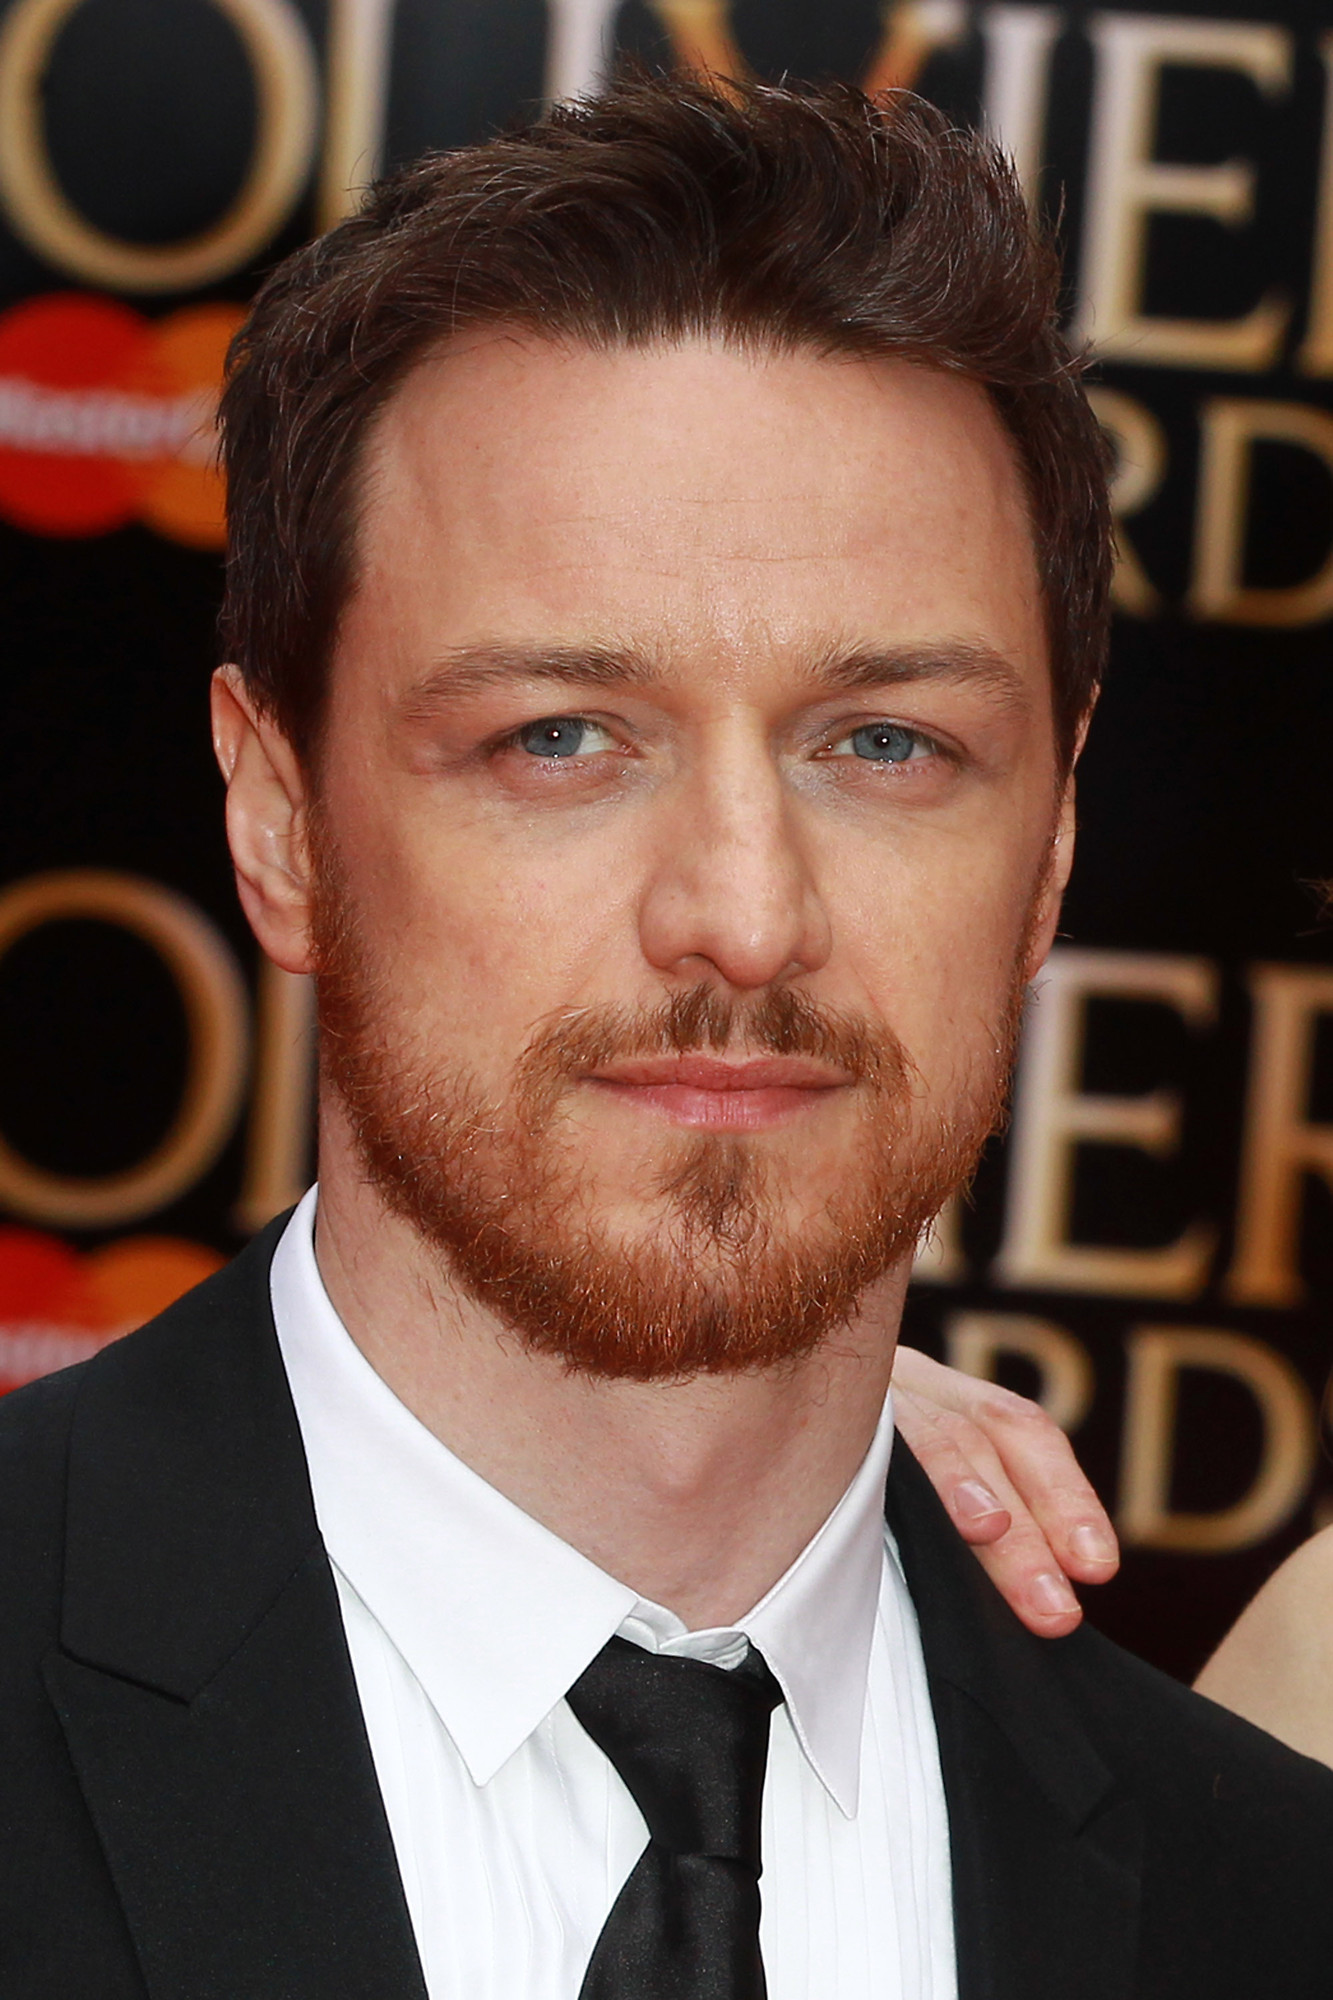 James McAvoy (born 1979)